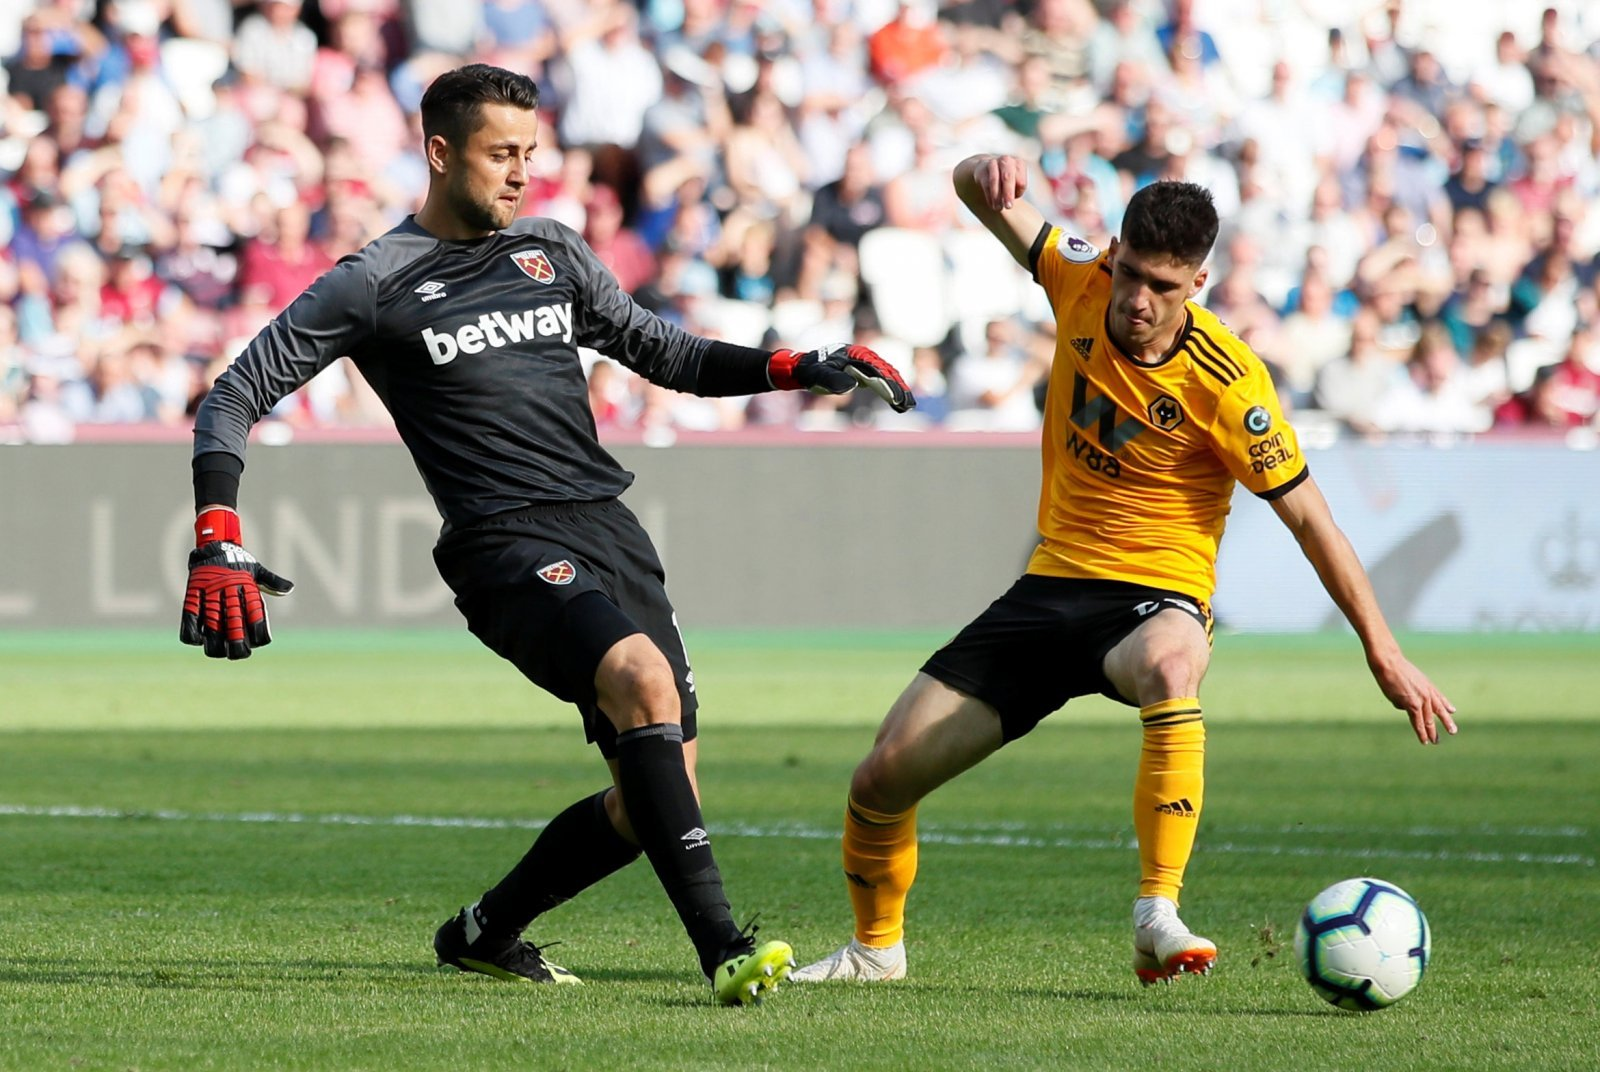 West Ham fans on Twitter all come together to rave over sublime Fabianski